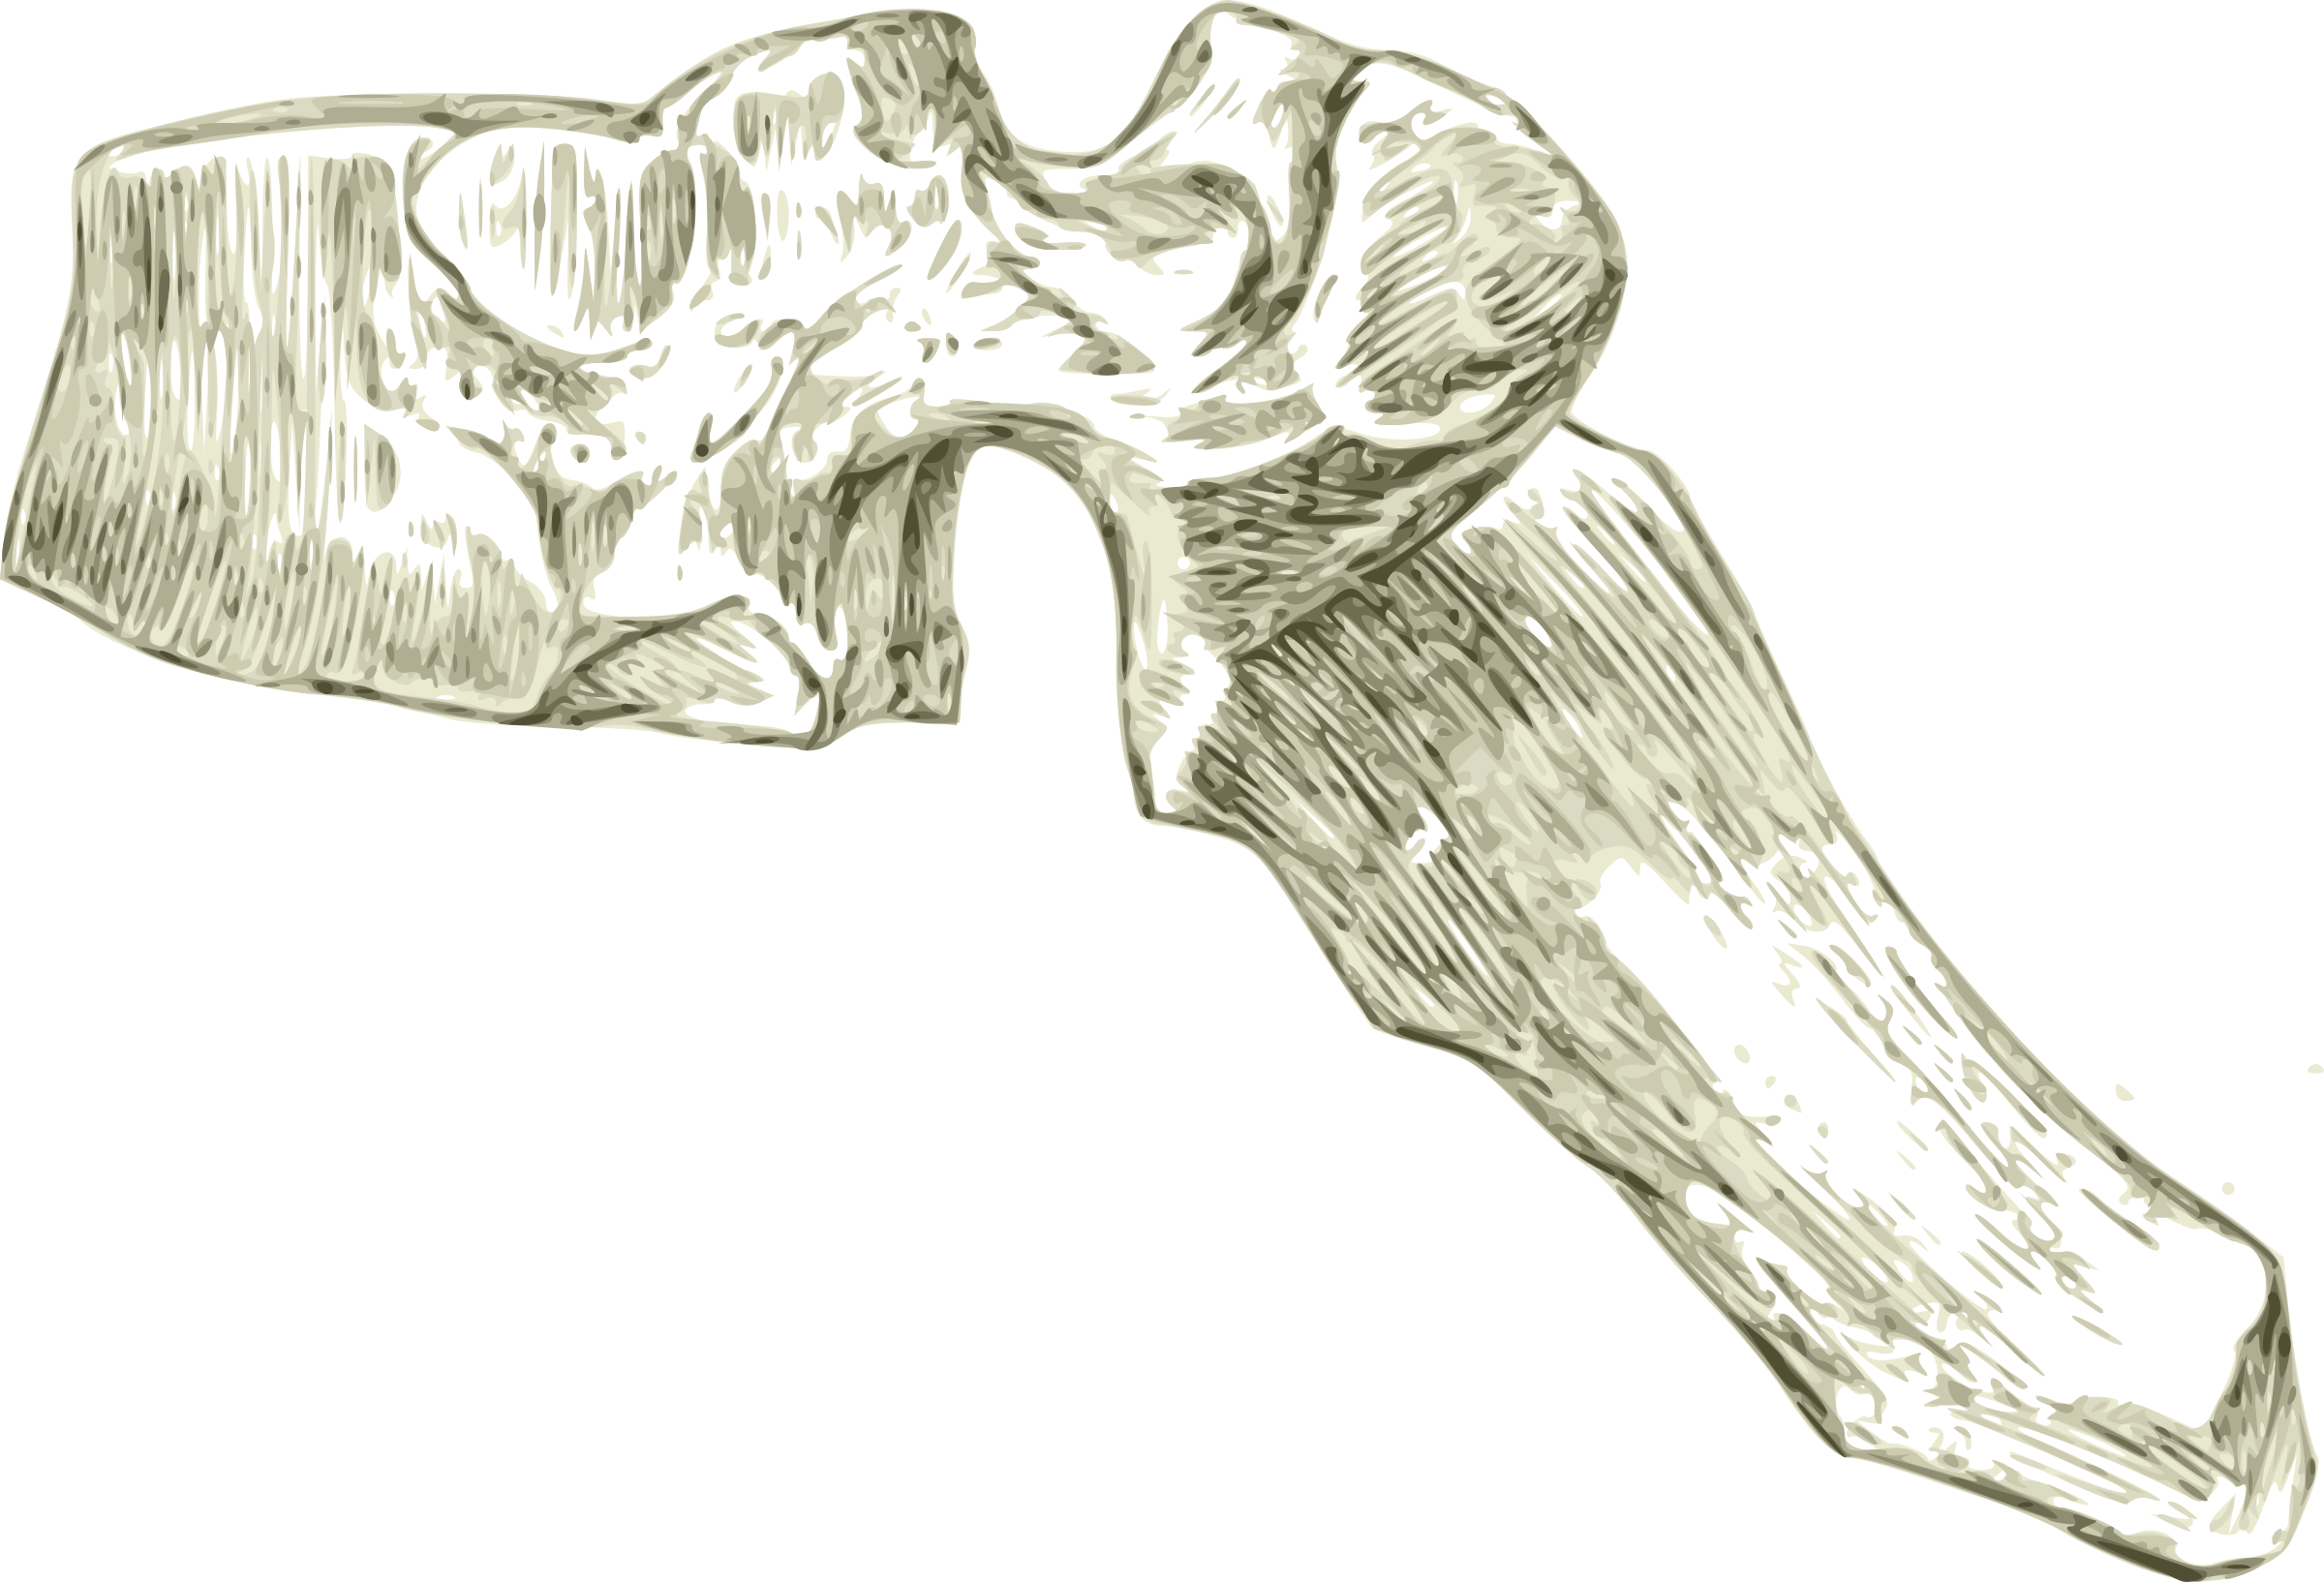 Clipart A Human Dorsal Or Thoracic Spine Or Vertebra